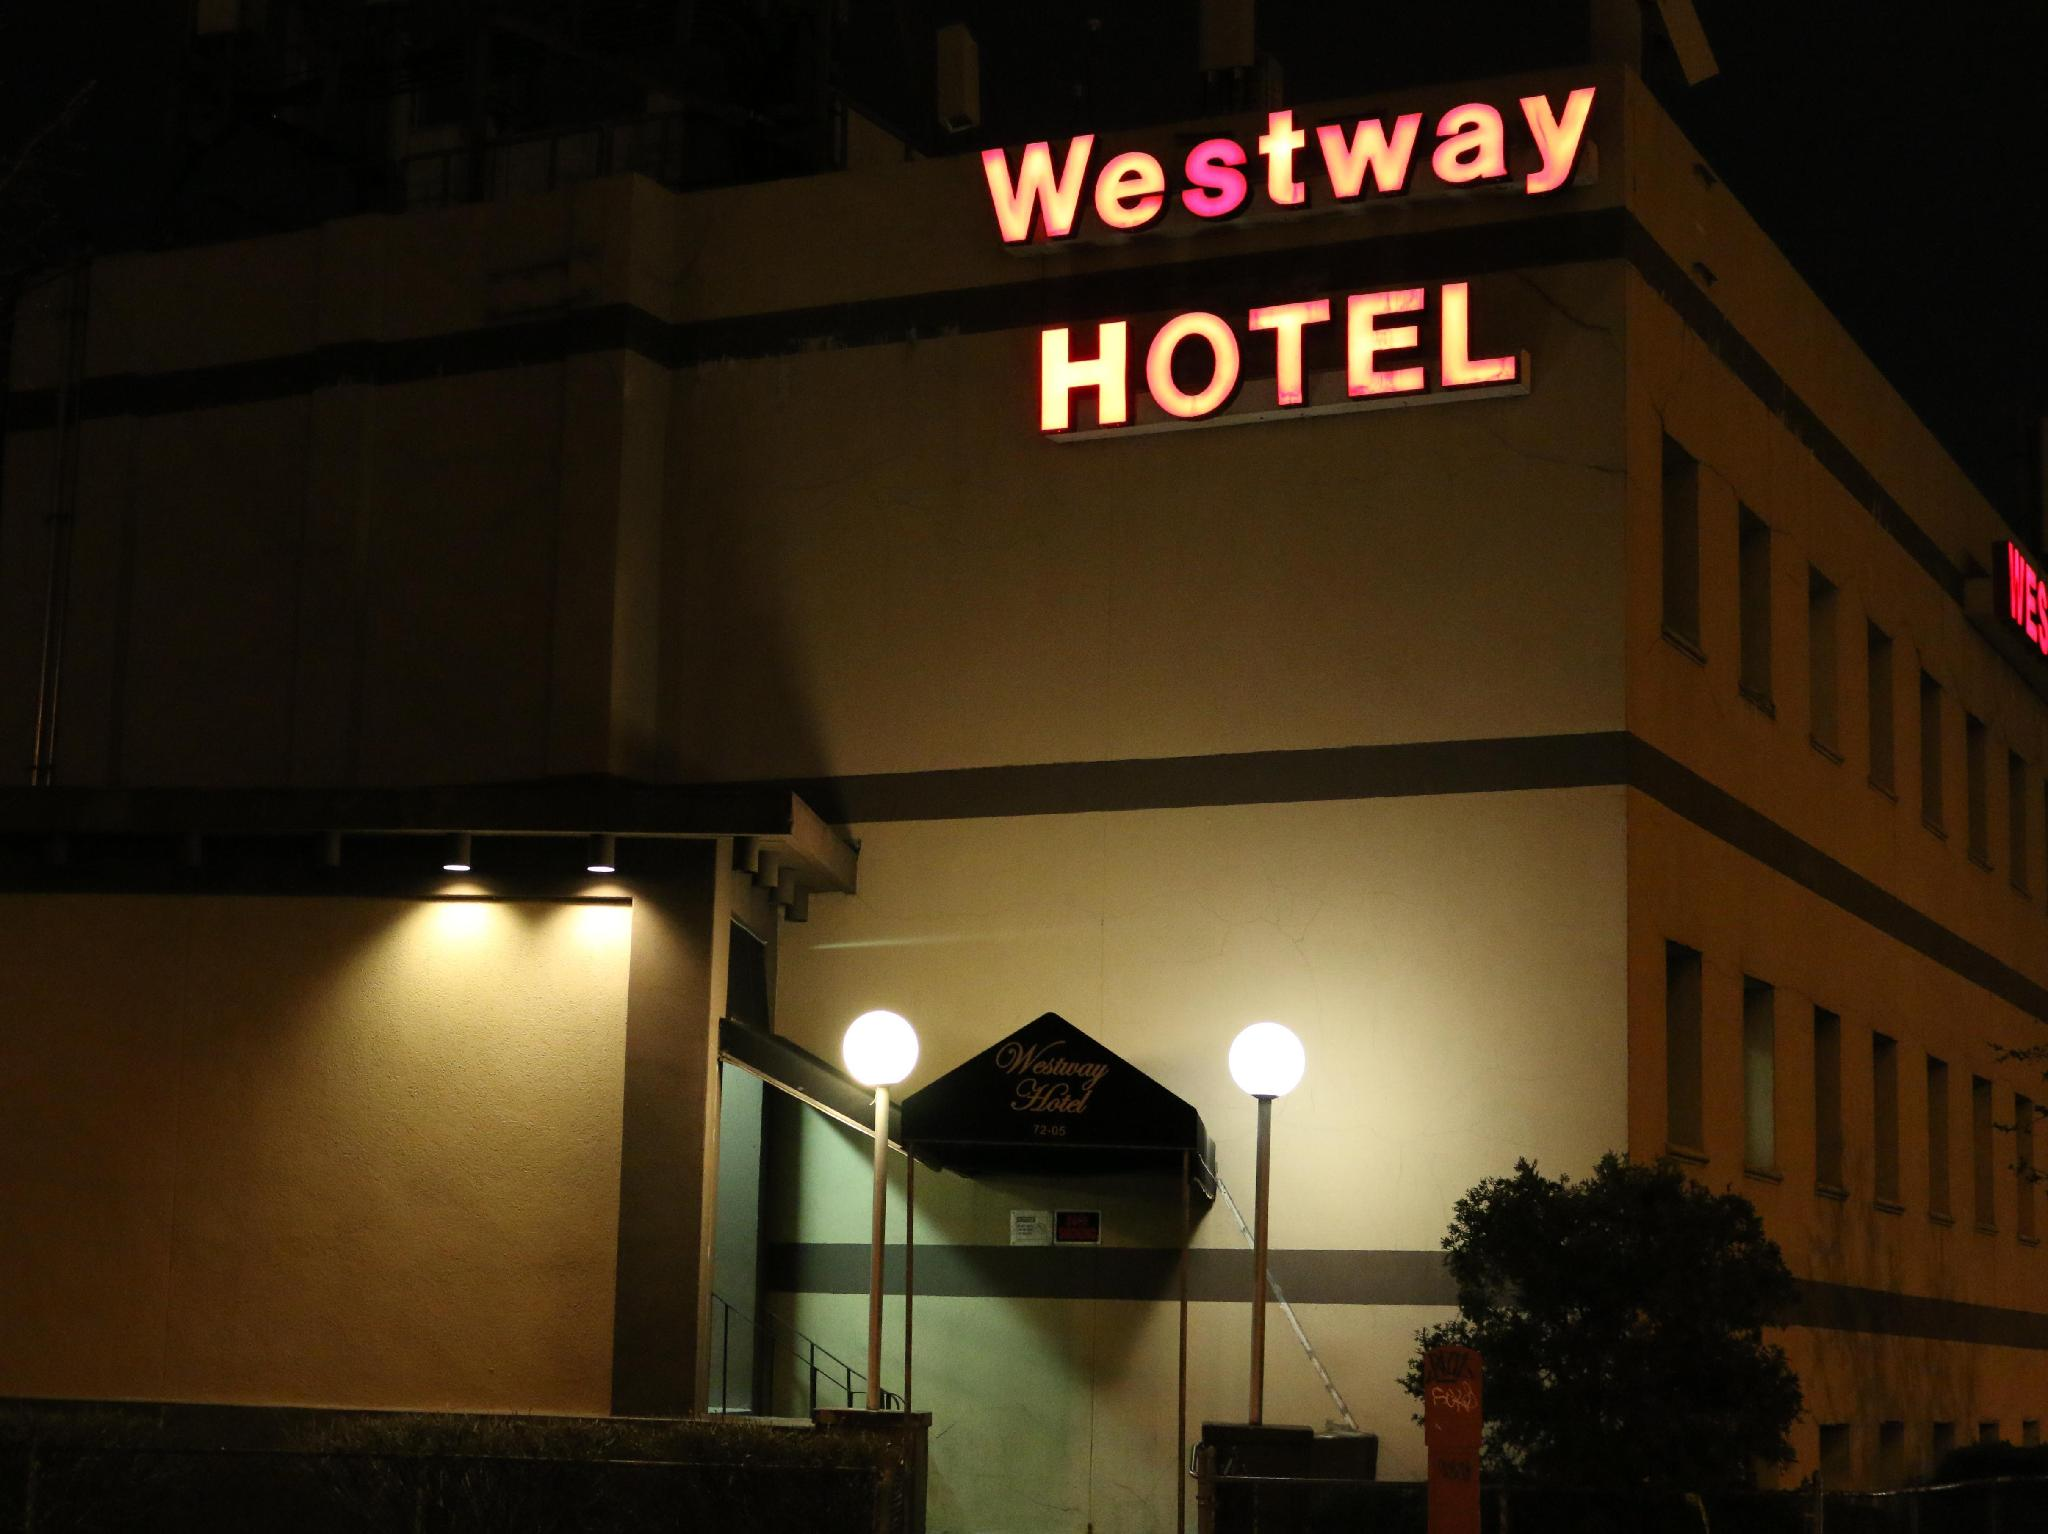 Westway Hotel Laguardia Airport - Hotel and accommodation in Usa in New York (NY)